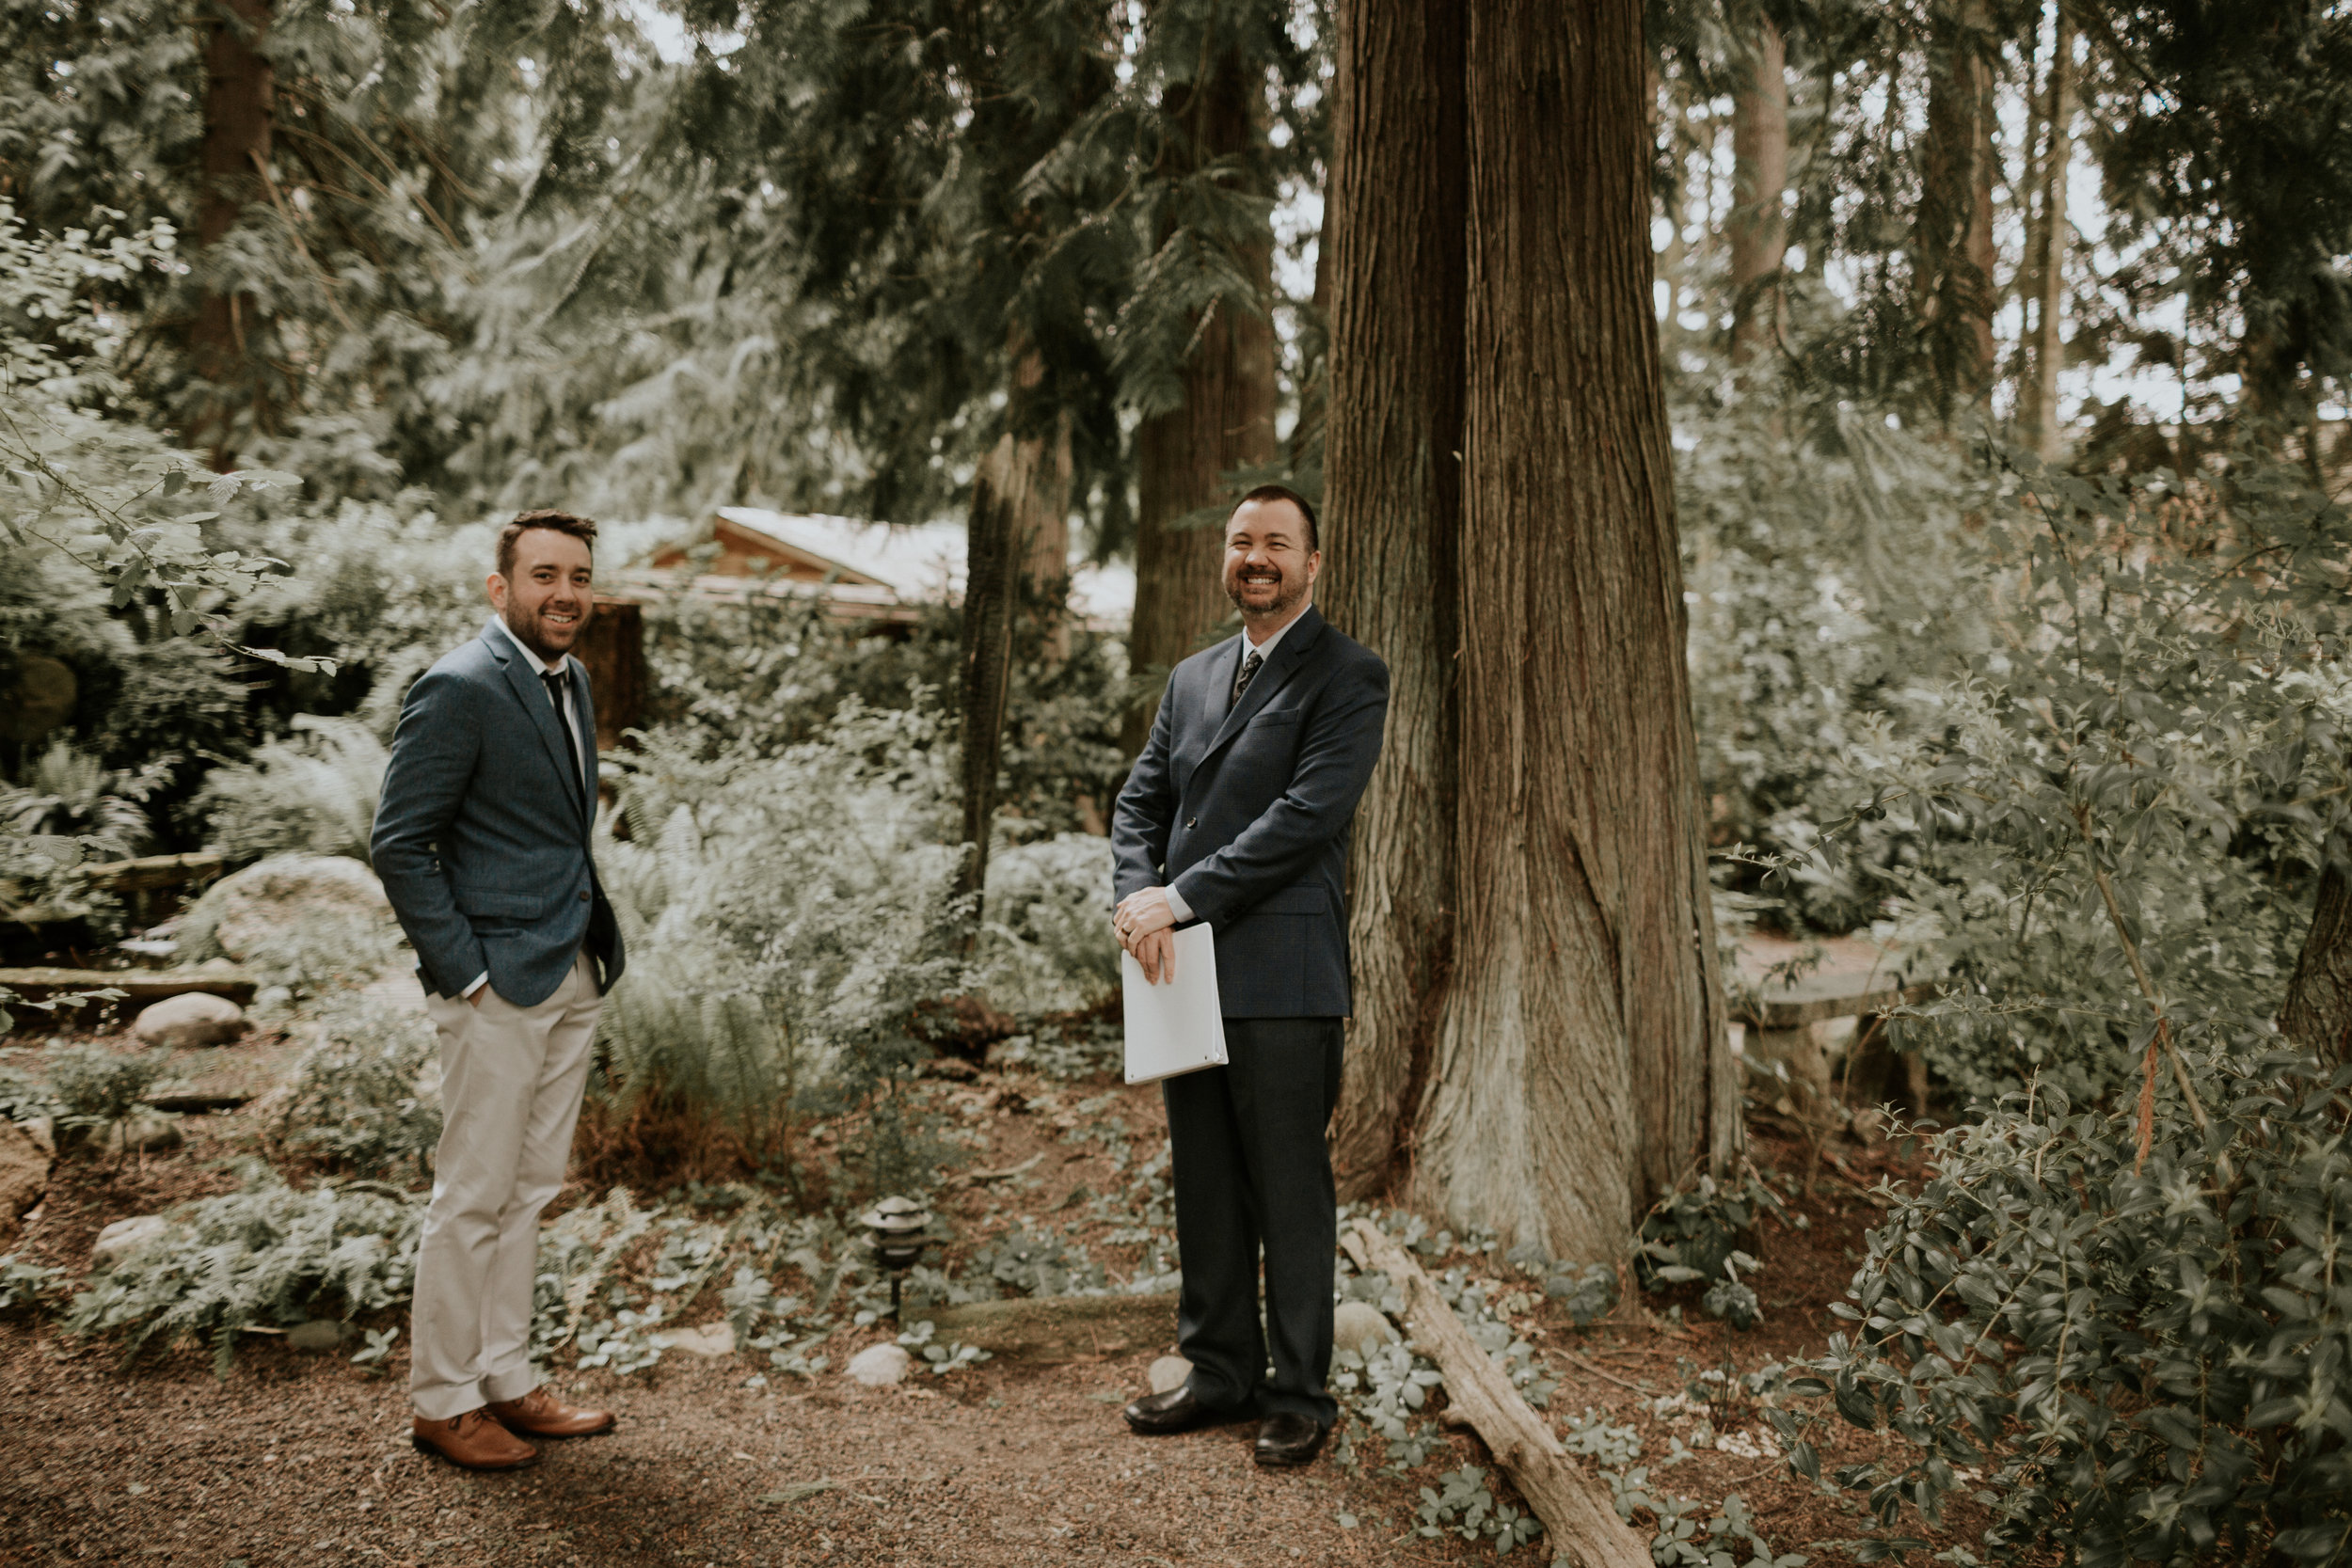 PNW-elopement-wedding-engagement-olympic national park-port angeles-hurricane ridge-lake crescent-kayla dawn photography- photographer-photography-kayladawnphoto-24.jpg